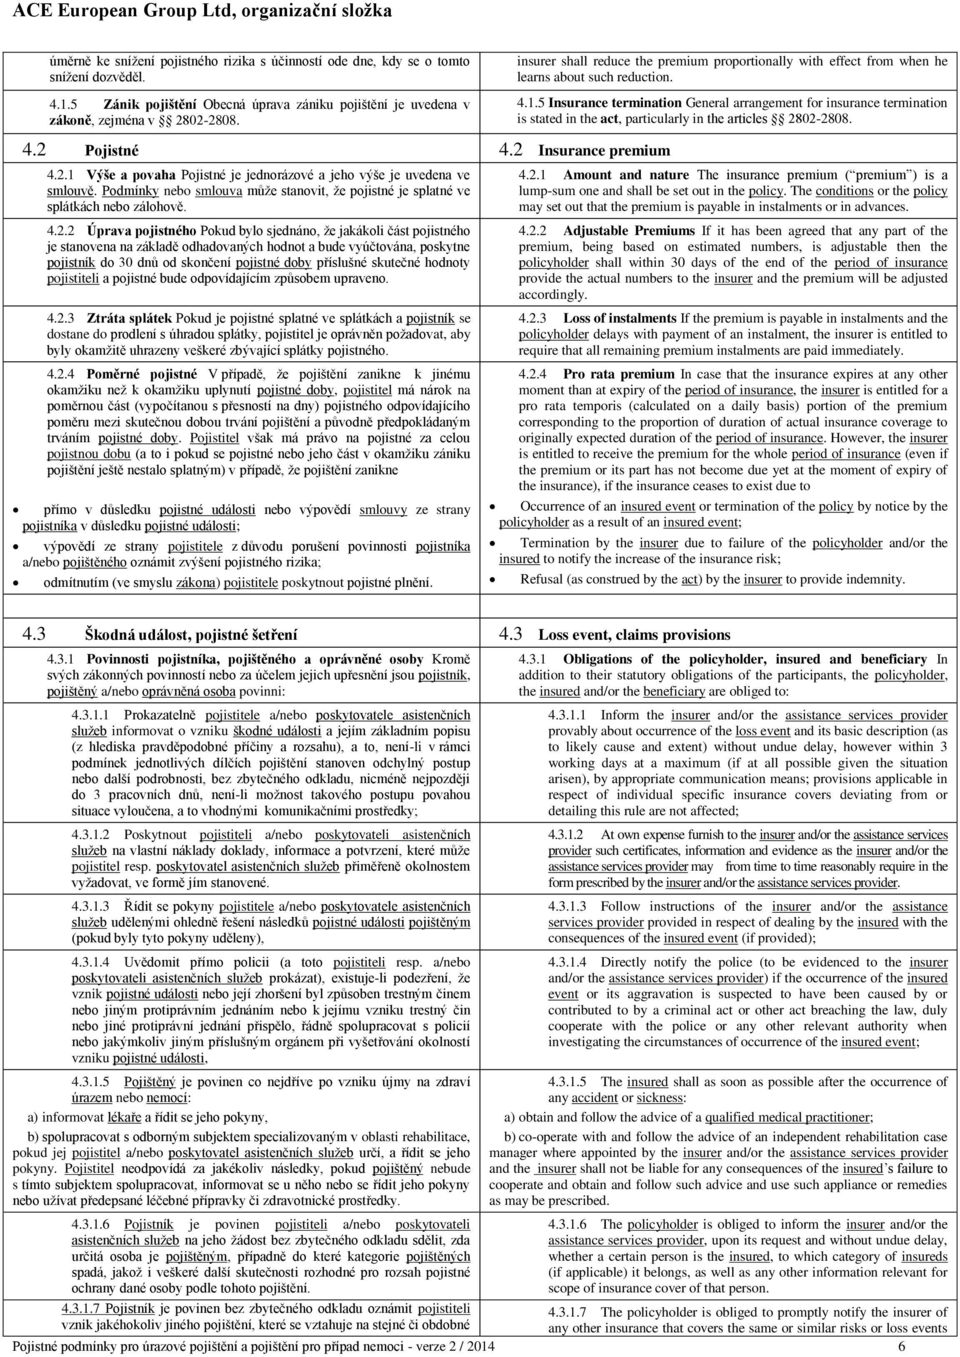 5 Insurance termination General arrangement for insurance termination is stated in the act, particularly in the articles 2802-2808. 4.2 Pojistné 4.2 Insurance premium 4.2.1 Výše a povaha Pojistné je jednorázové a jeho výše je uvedena ve smlouvě.